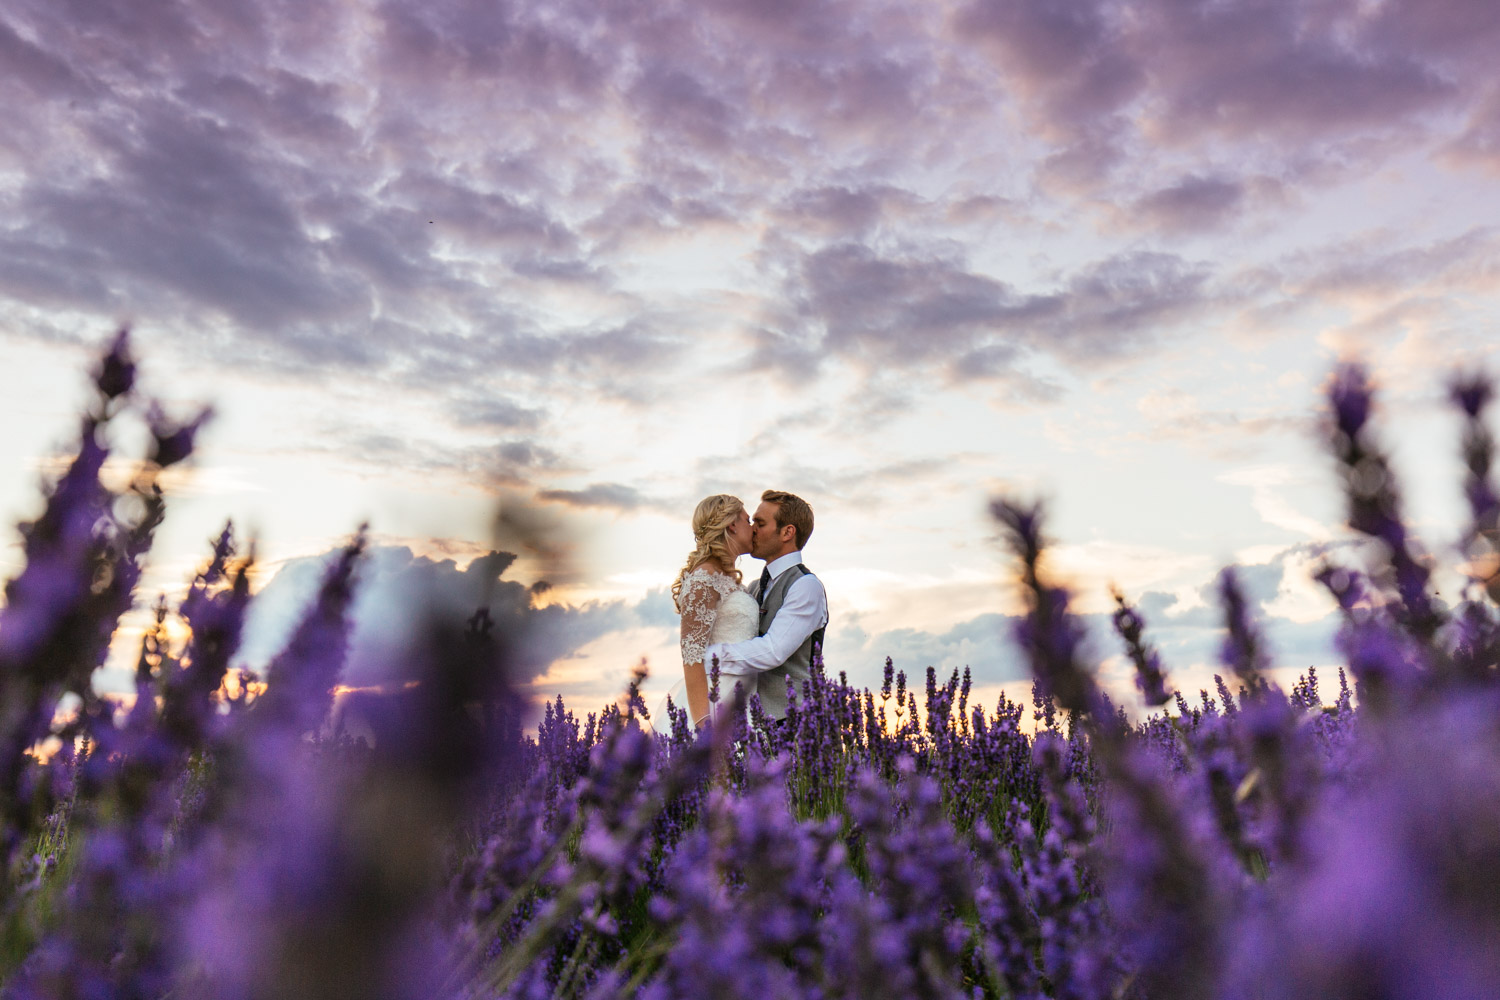 Faye-and-Tom-Wedding-Hitchin-Lavender-77.jpg